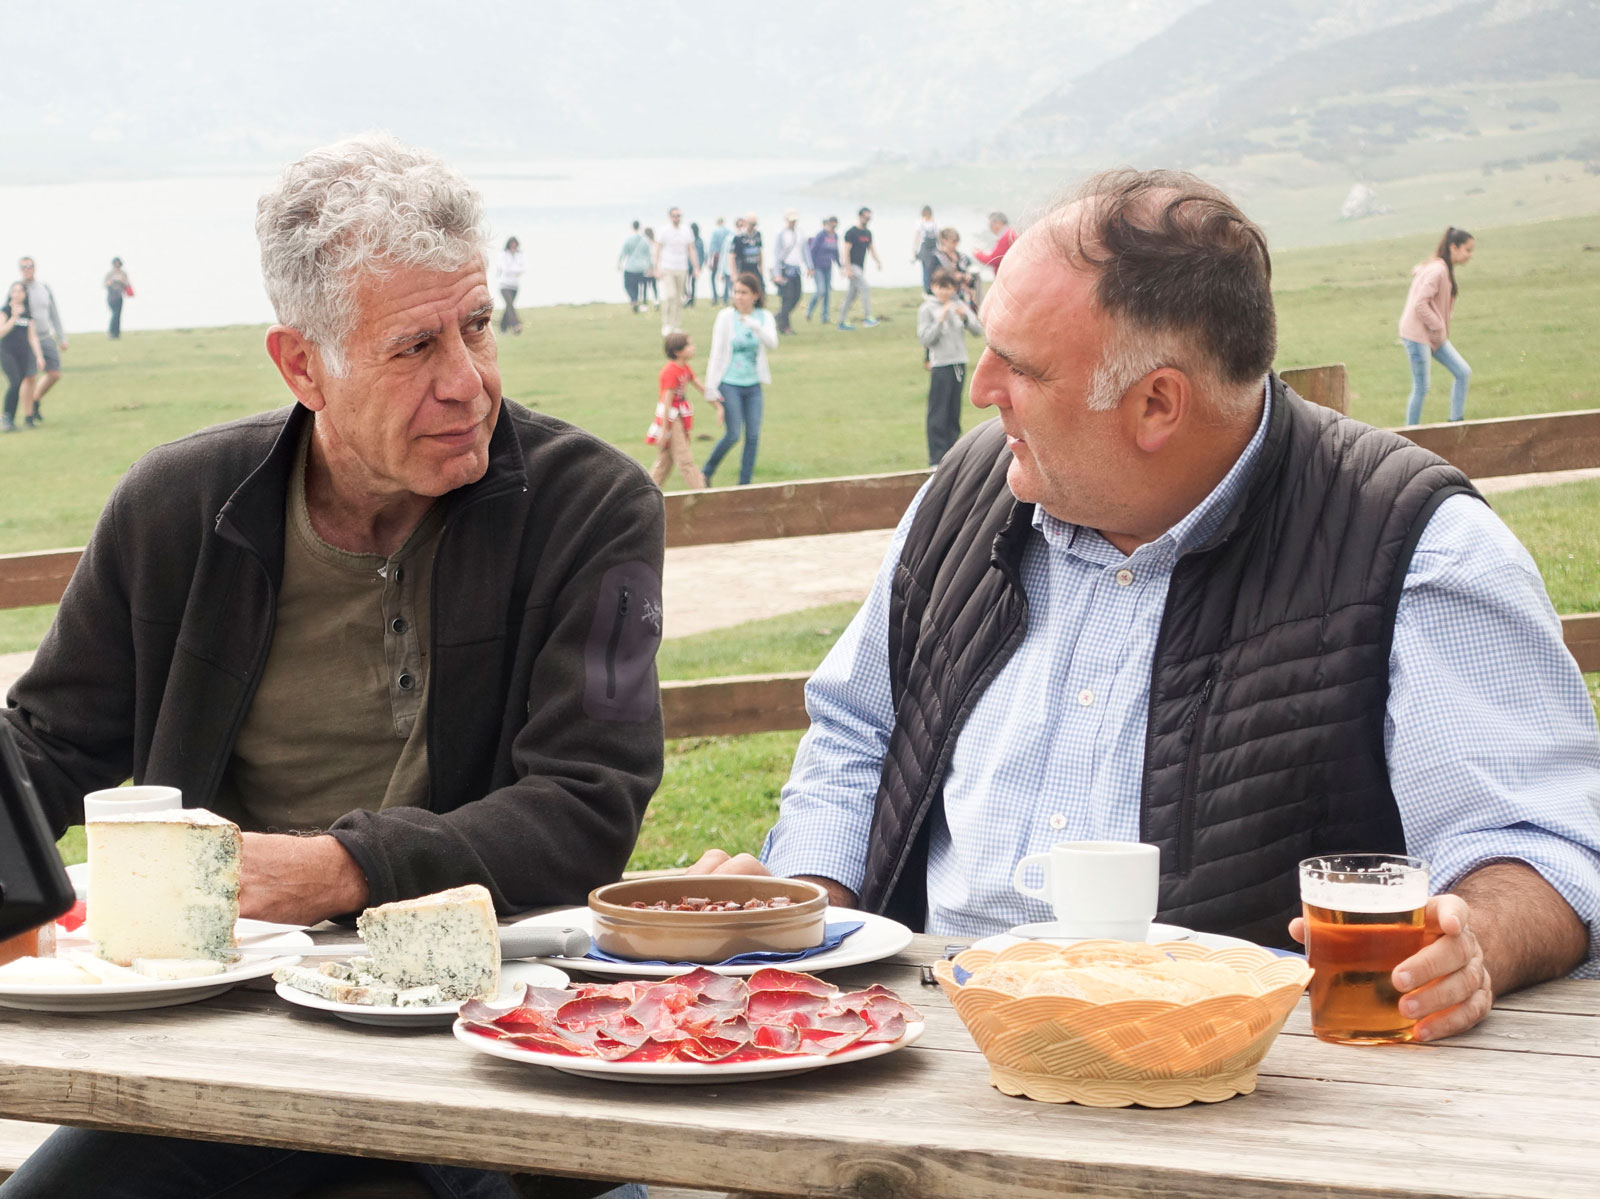 Here's What's in Store for Anthony Bourdain and José Andrés' Trip to Spain